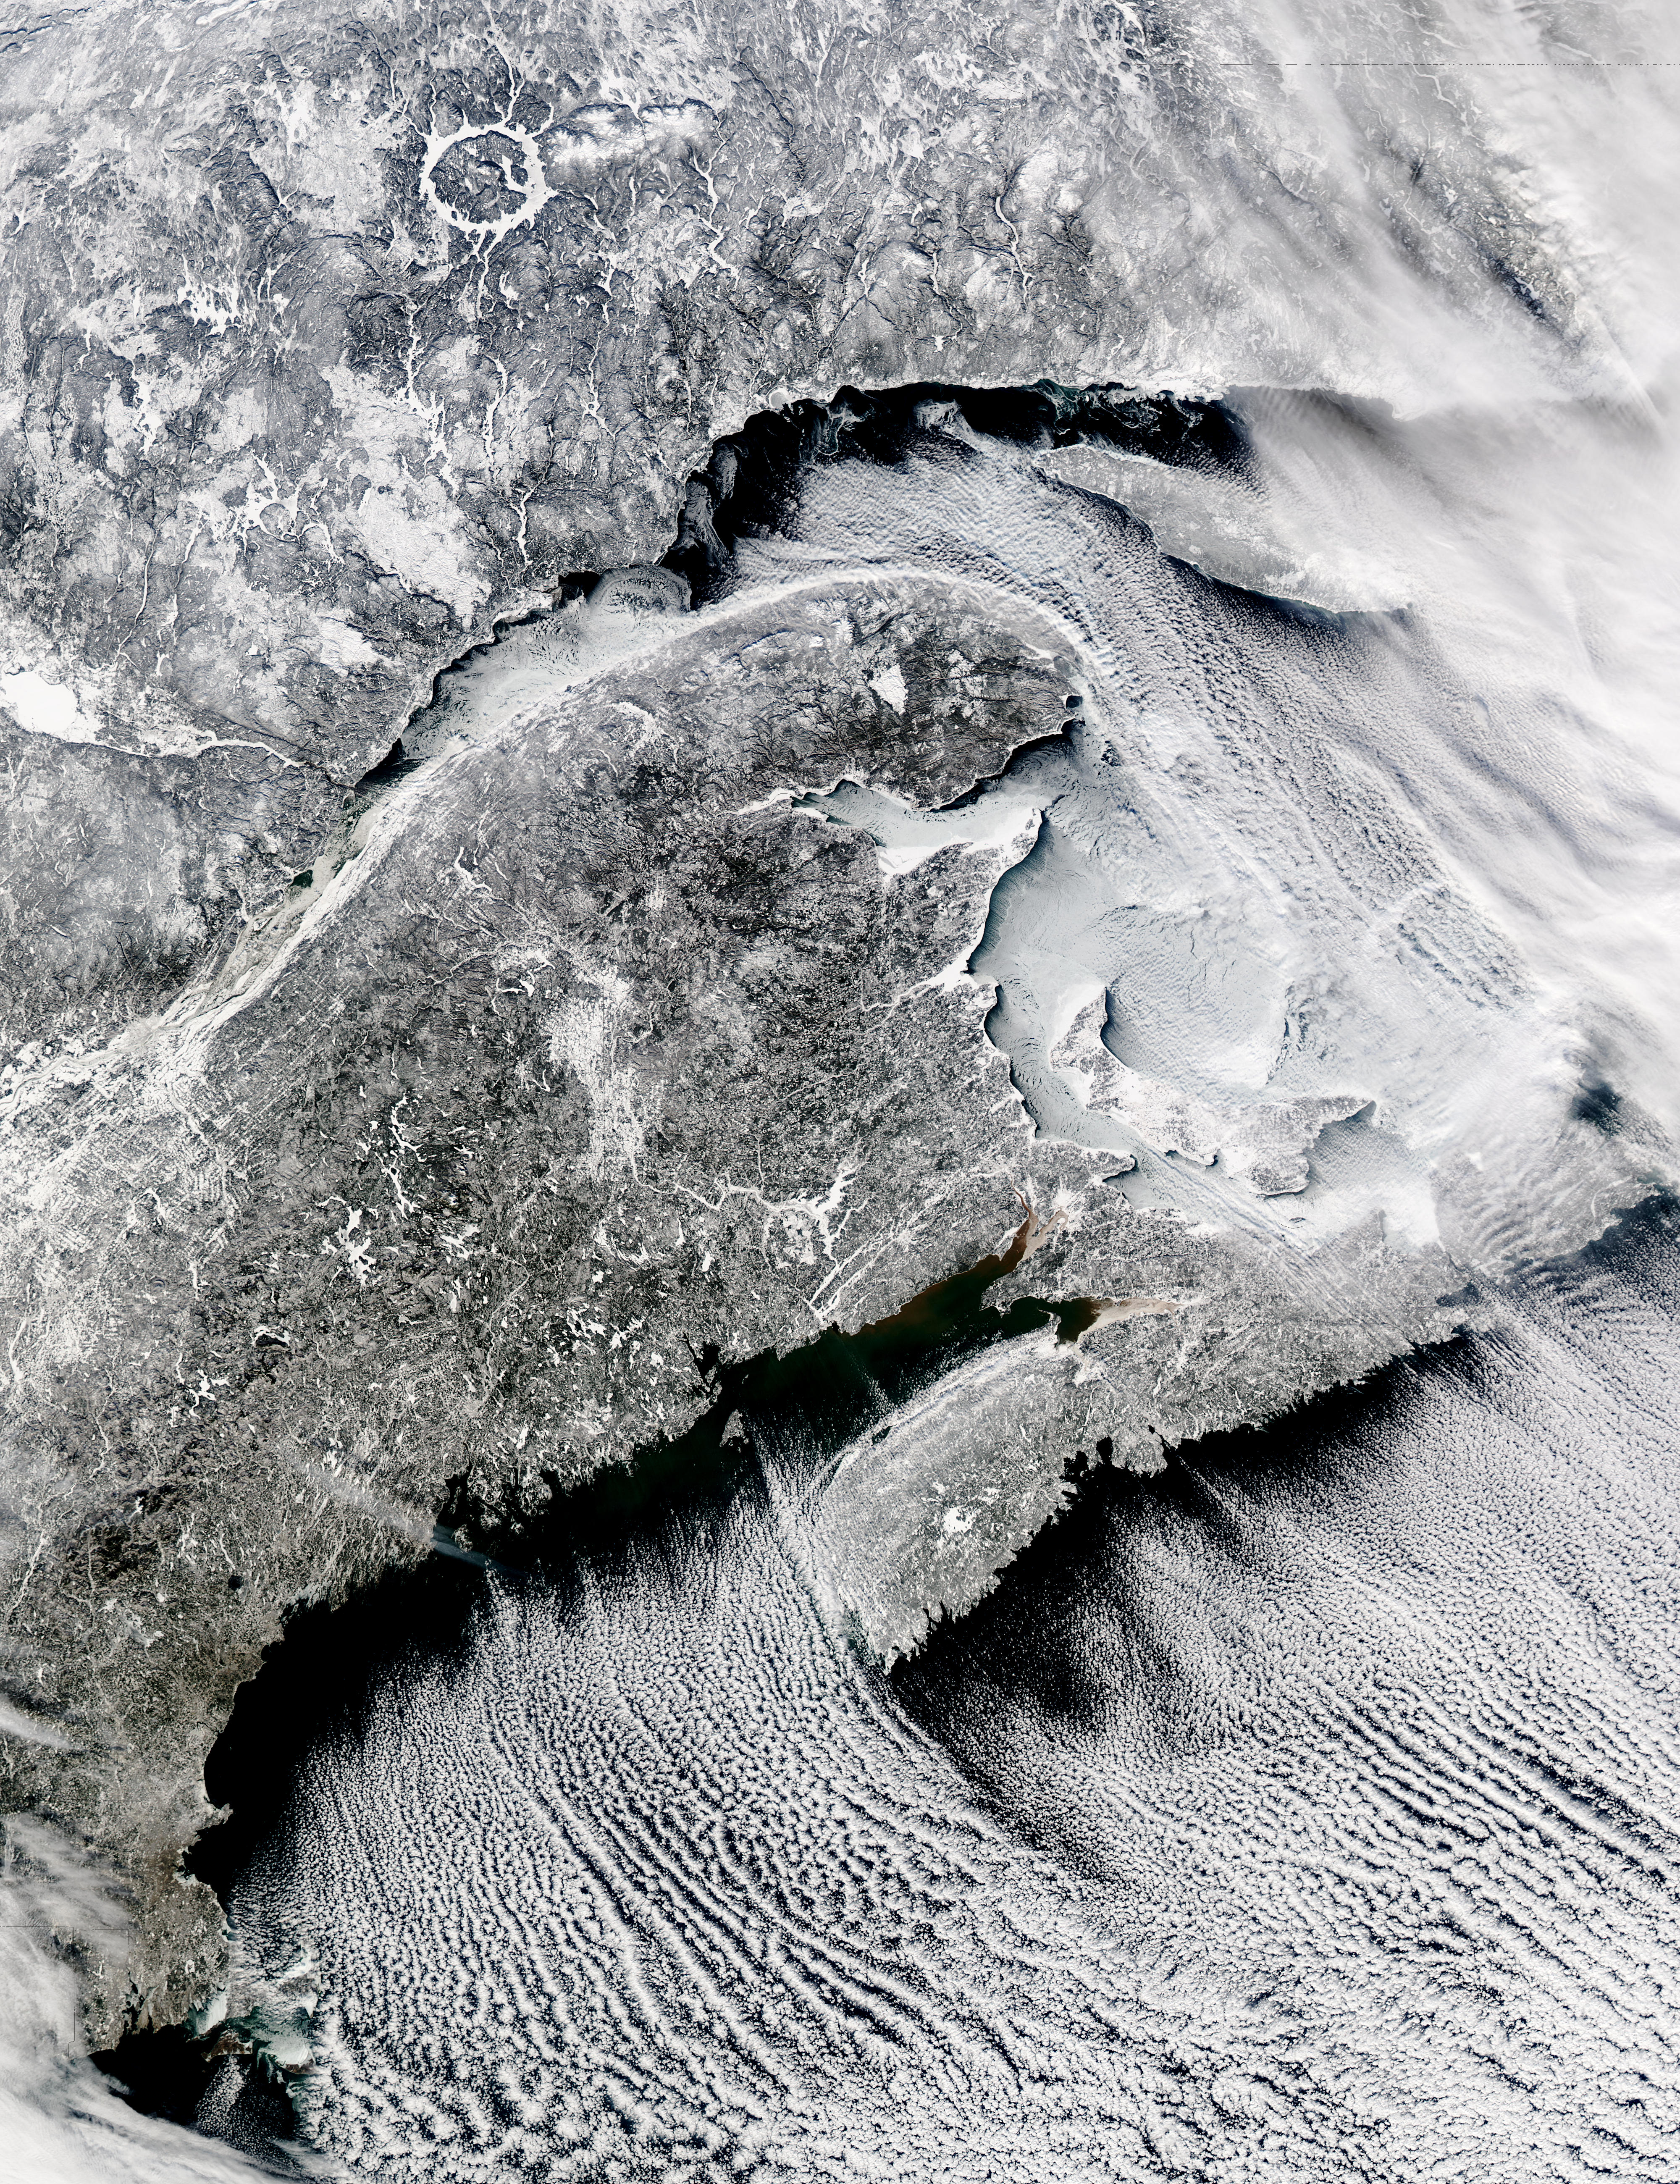 Cloud streets off Nova Scotia, Canada